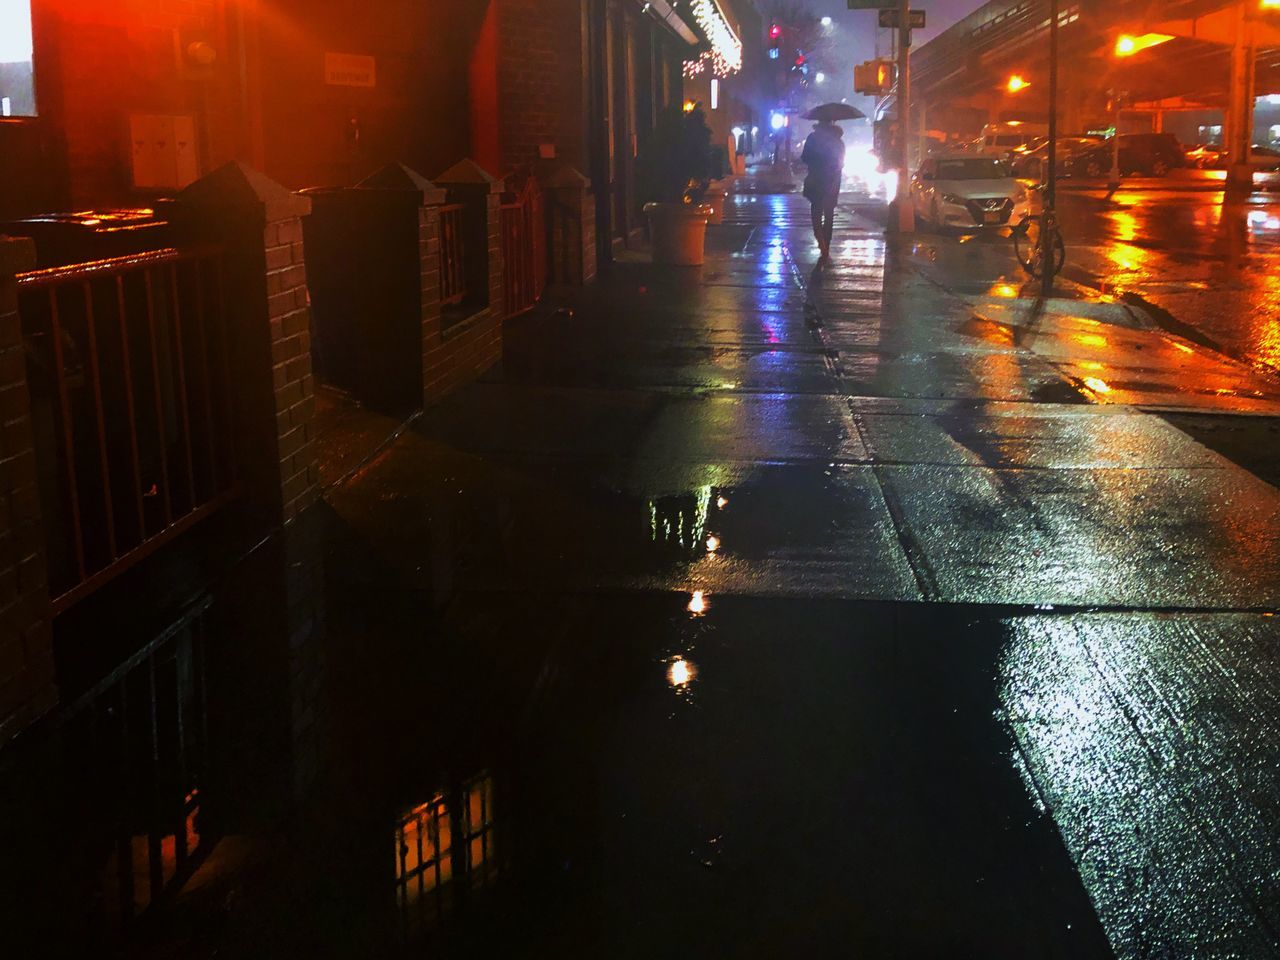 illuminated, night, wet, city, architecture, street, built structure, building exterior, rain, reflection, incidental people, water, transportation, road, building, the way forward, motor vehicle, car, rainy season, outdoors